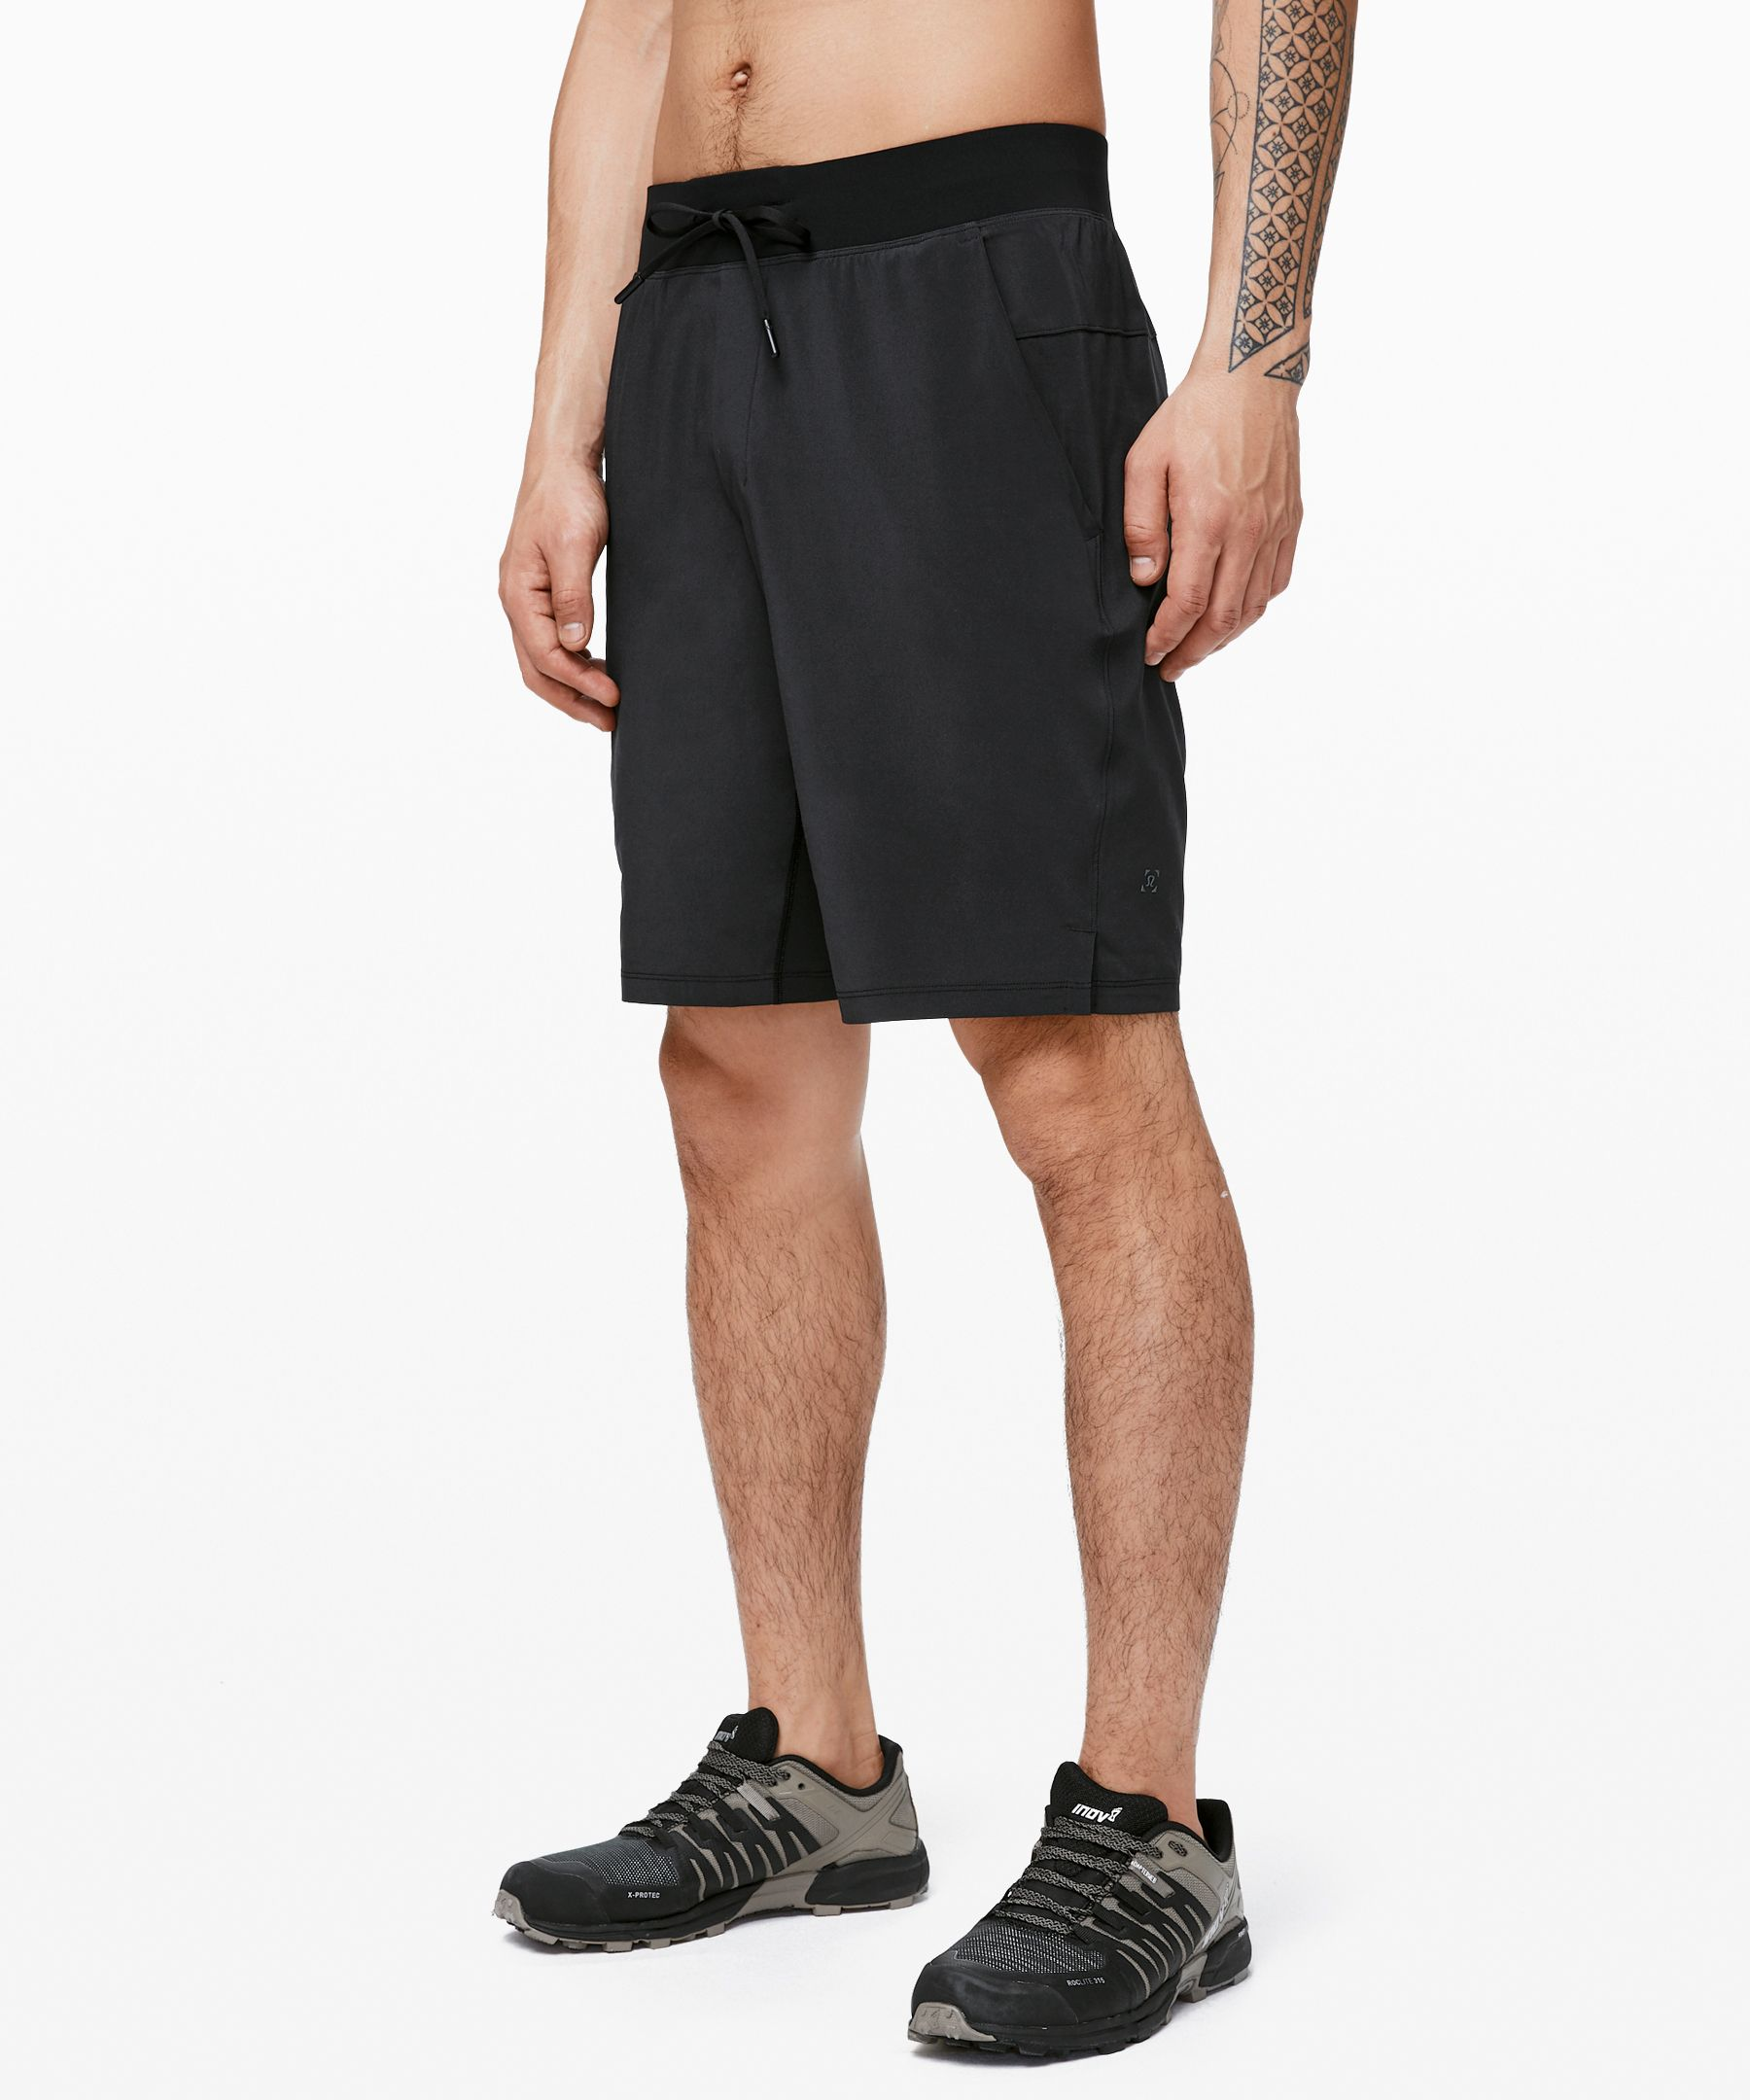 "T.H.E. Short 9"" Updated New by Lululemon"